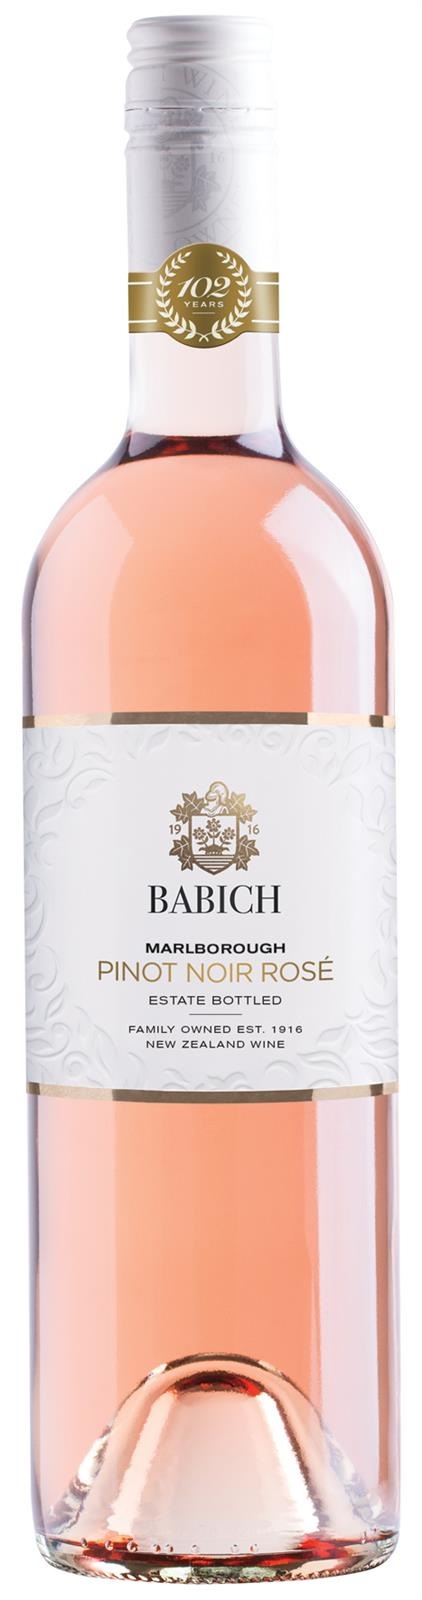 Babich Marlborough Pinot Noir Rosé 2019